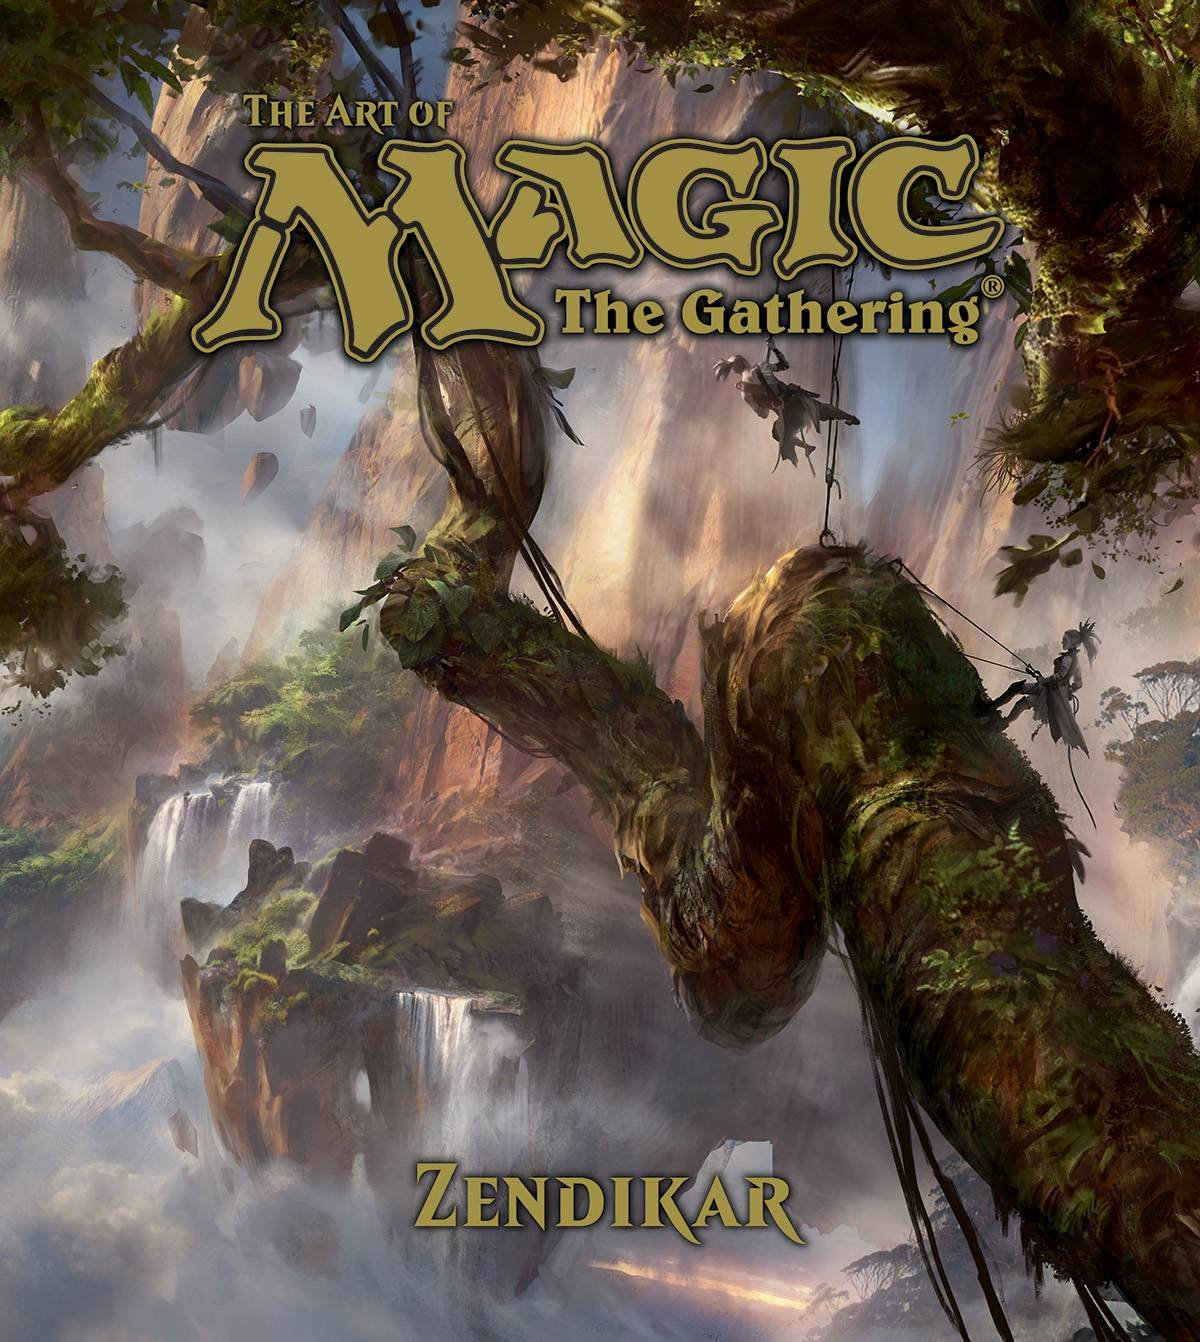 Amazon.com: The Art of Magic: The Gathering - Zendikar ...